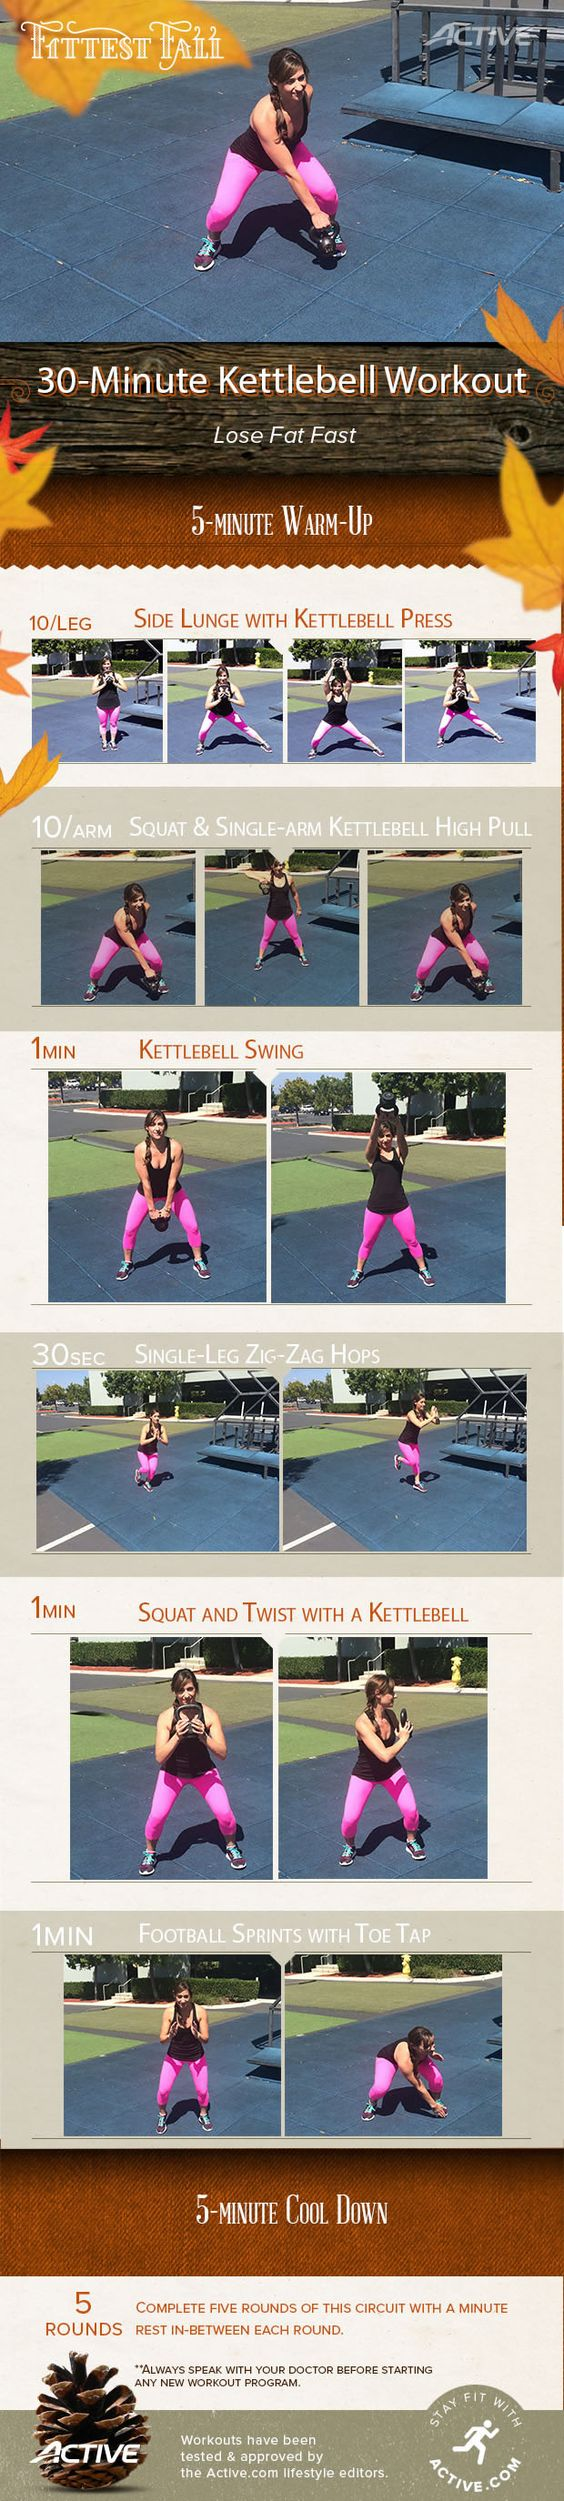 30-Minute Kettlebell Workout to Lose Fat #FittestFall